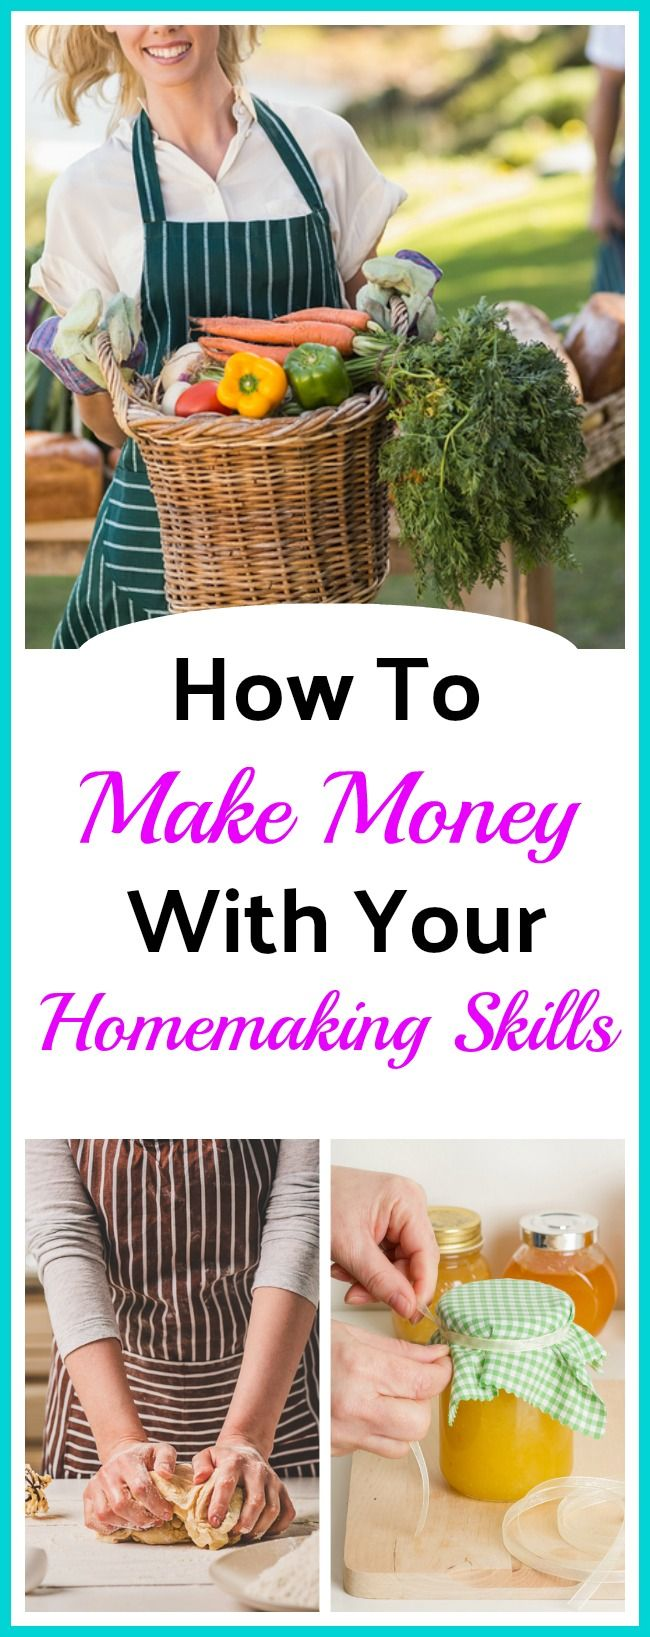 How To Make Money With Your Homemaking Skills - By getting creative you can earn money with the same homemaking skills you use every day to care for your home and family! Frugal living - Ways to make money - Living on a Budget - Homemaker Tips